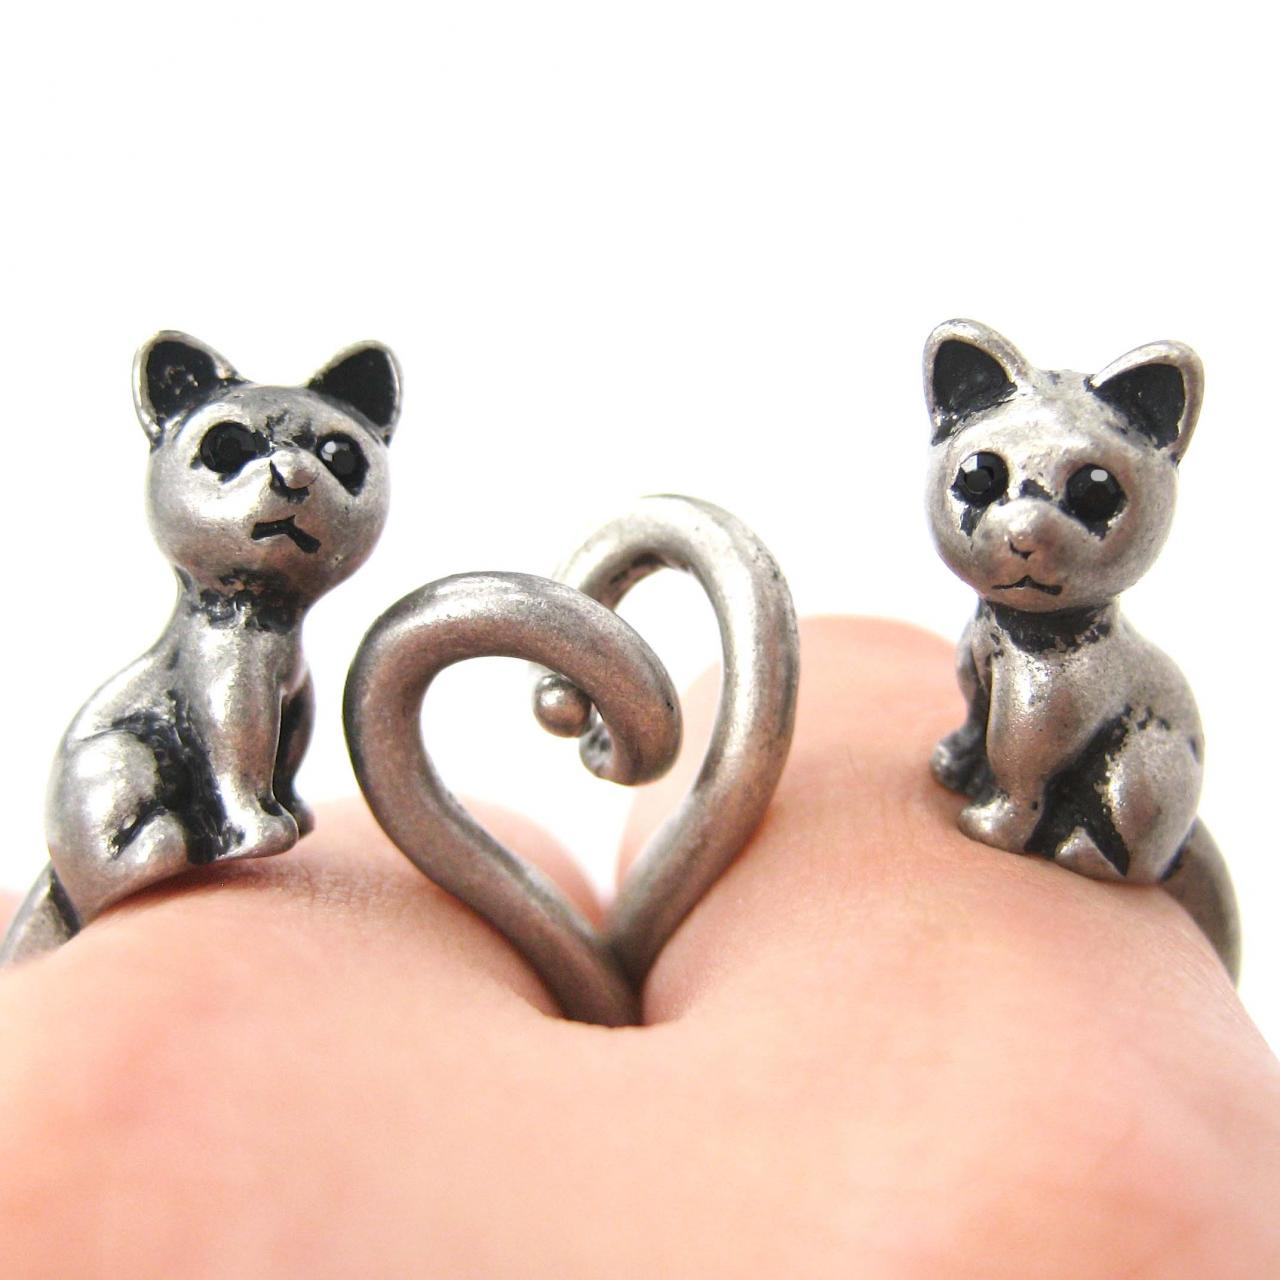 Kitty Cat Left and Right Facing Animal Wrap Ring in Silver - Sizes 4 to 9 Available